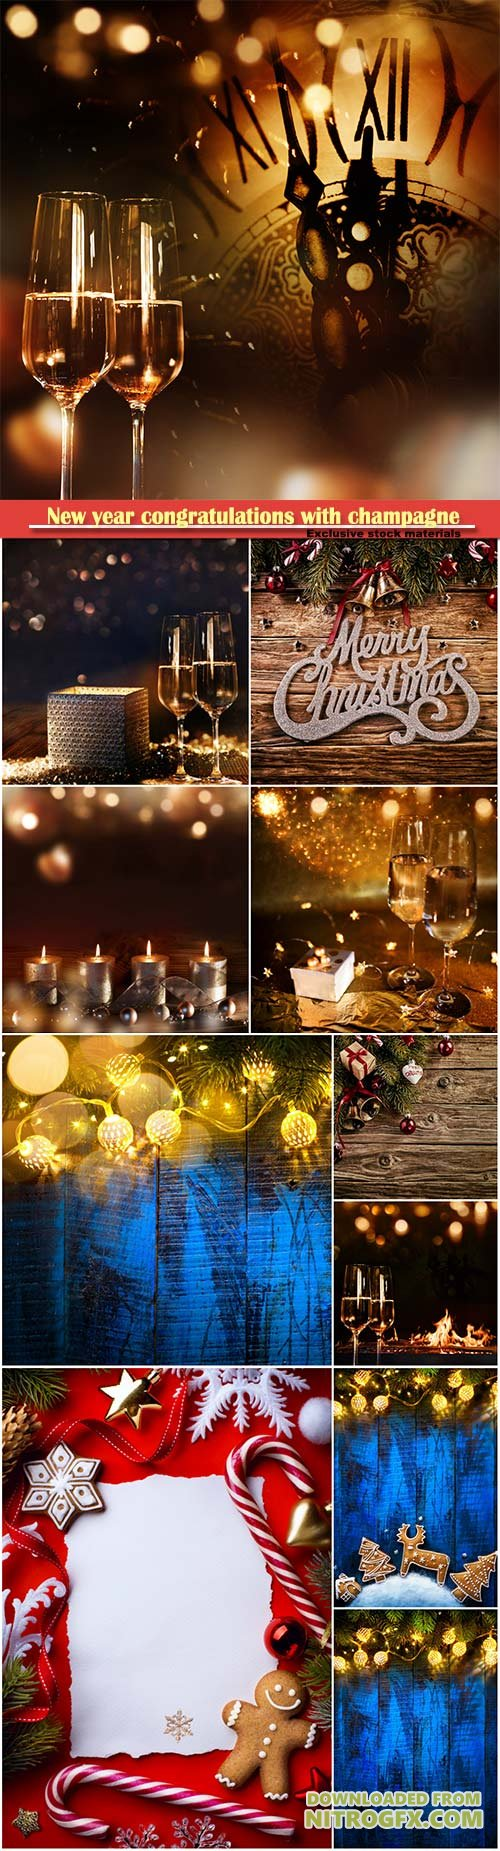 New year congratulations with champagne, Christmas decorations